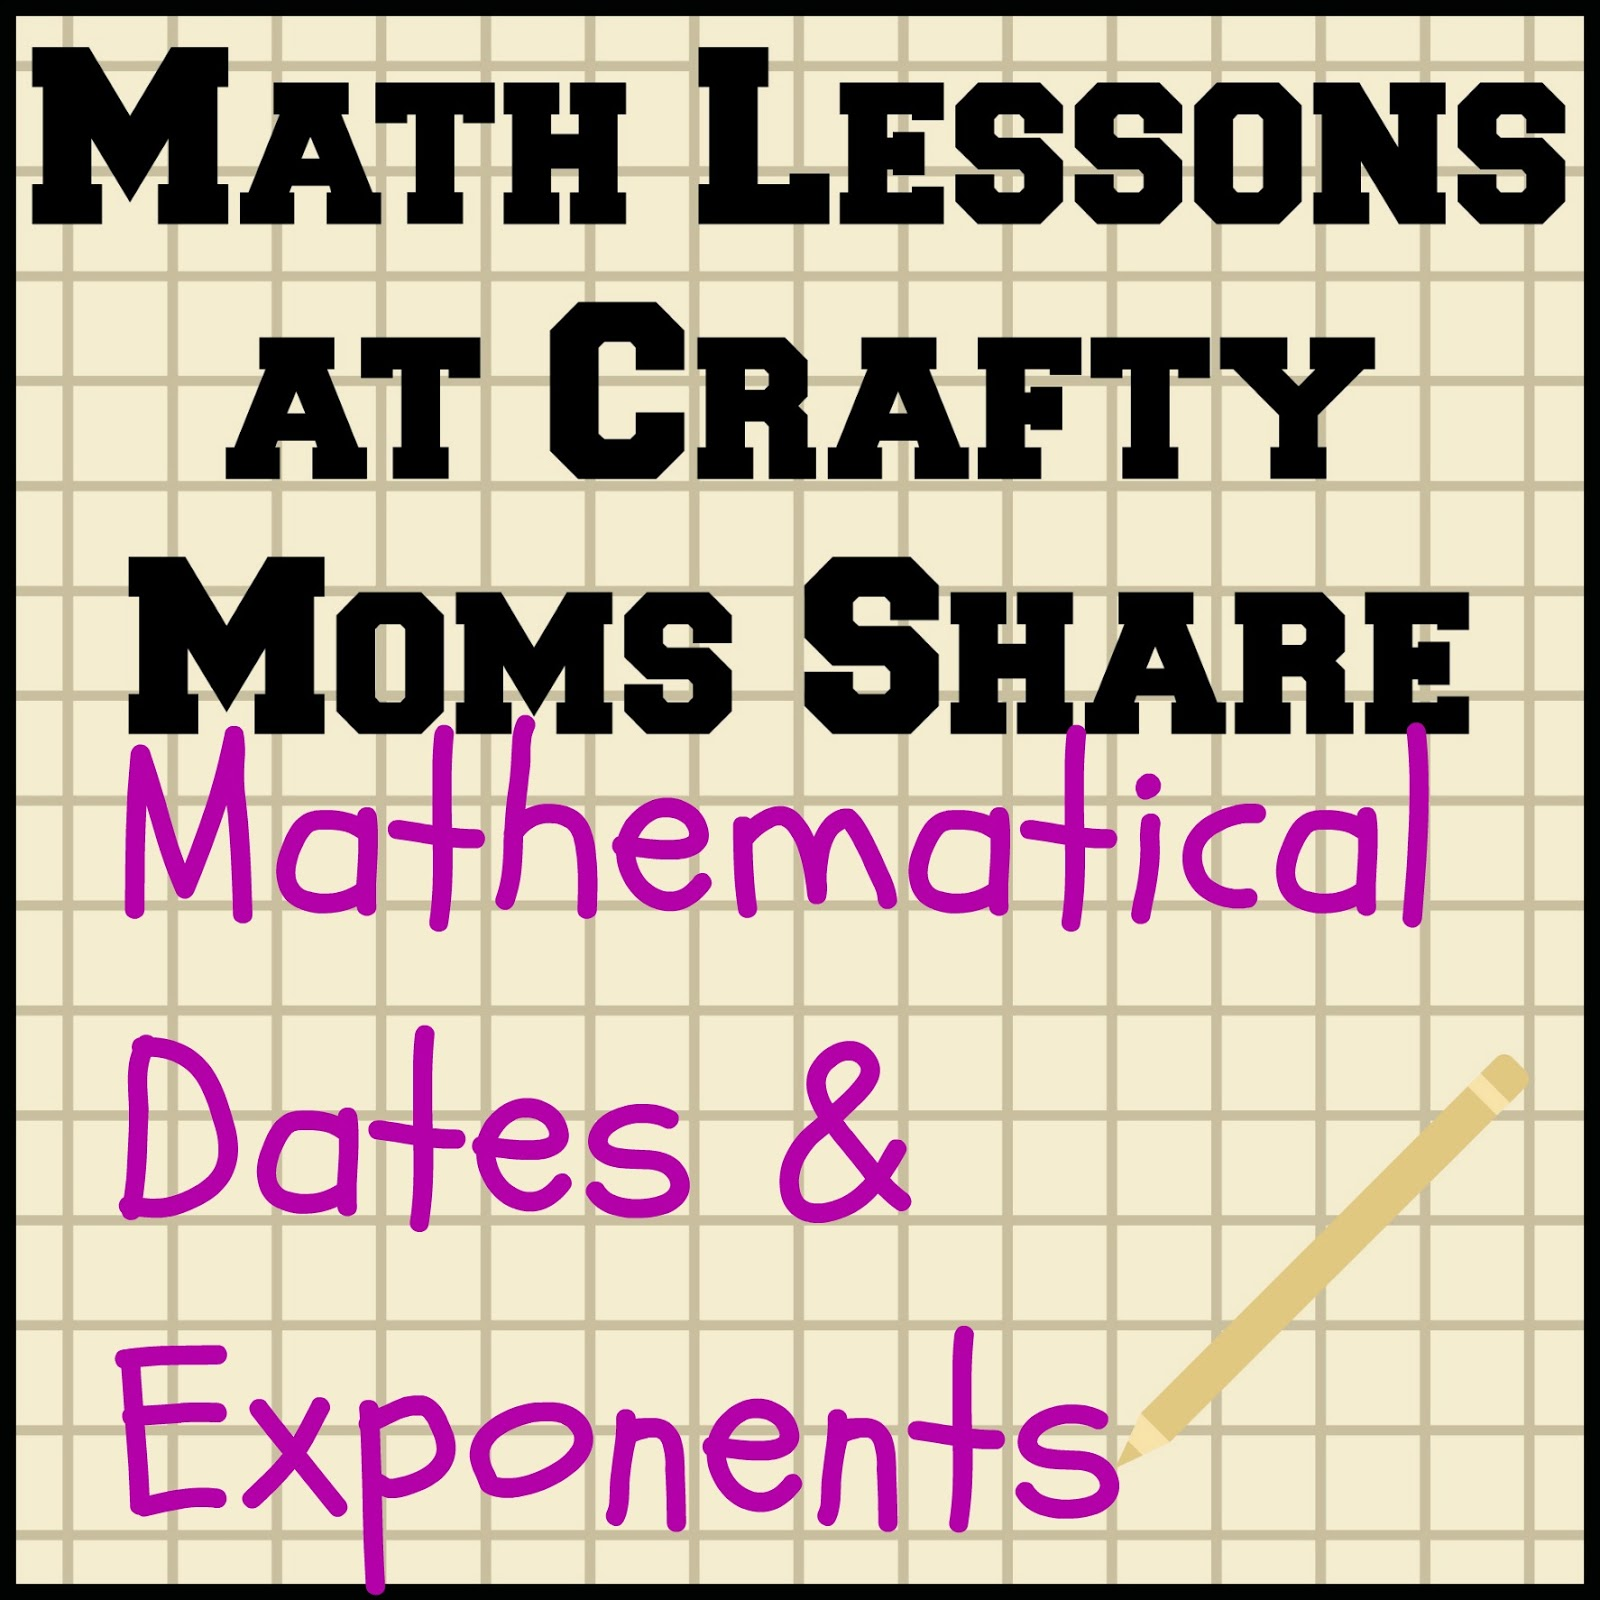 Crafty Moms Share Mathematical Dates Amp Exponents Math Lesson